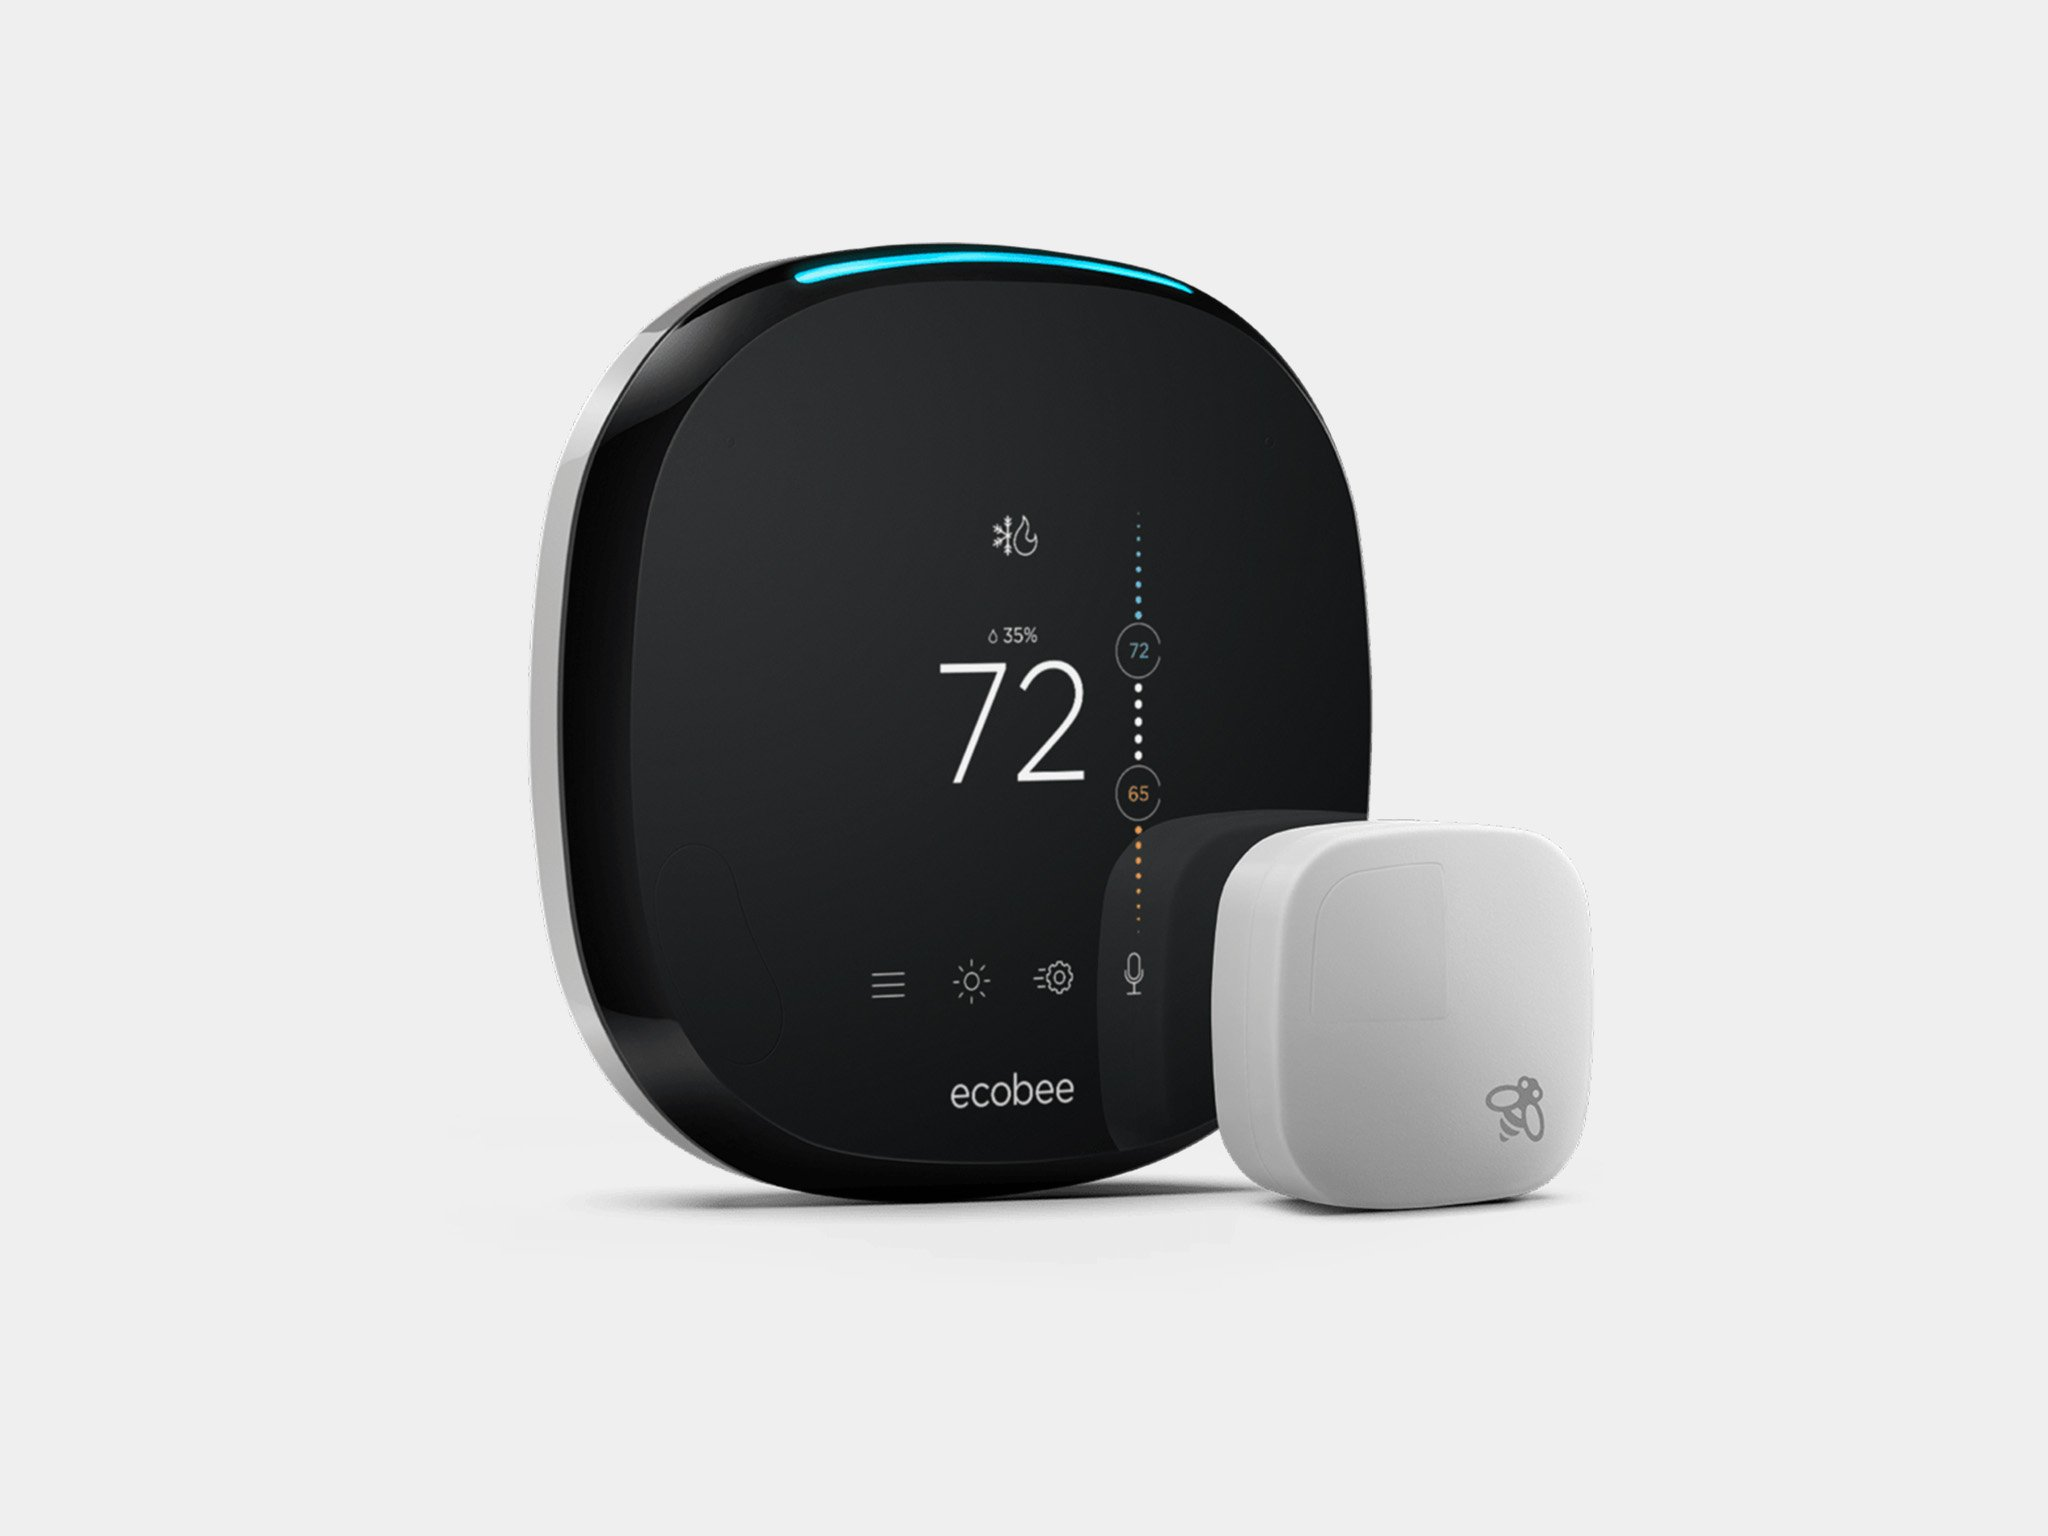 medium resolution of ecobee4 smart thermostat everything you need to know